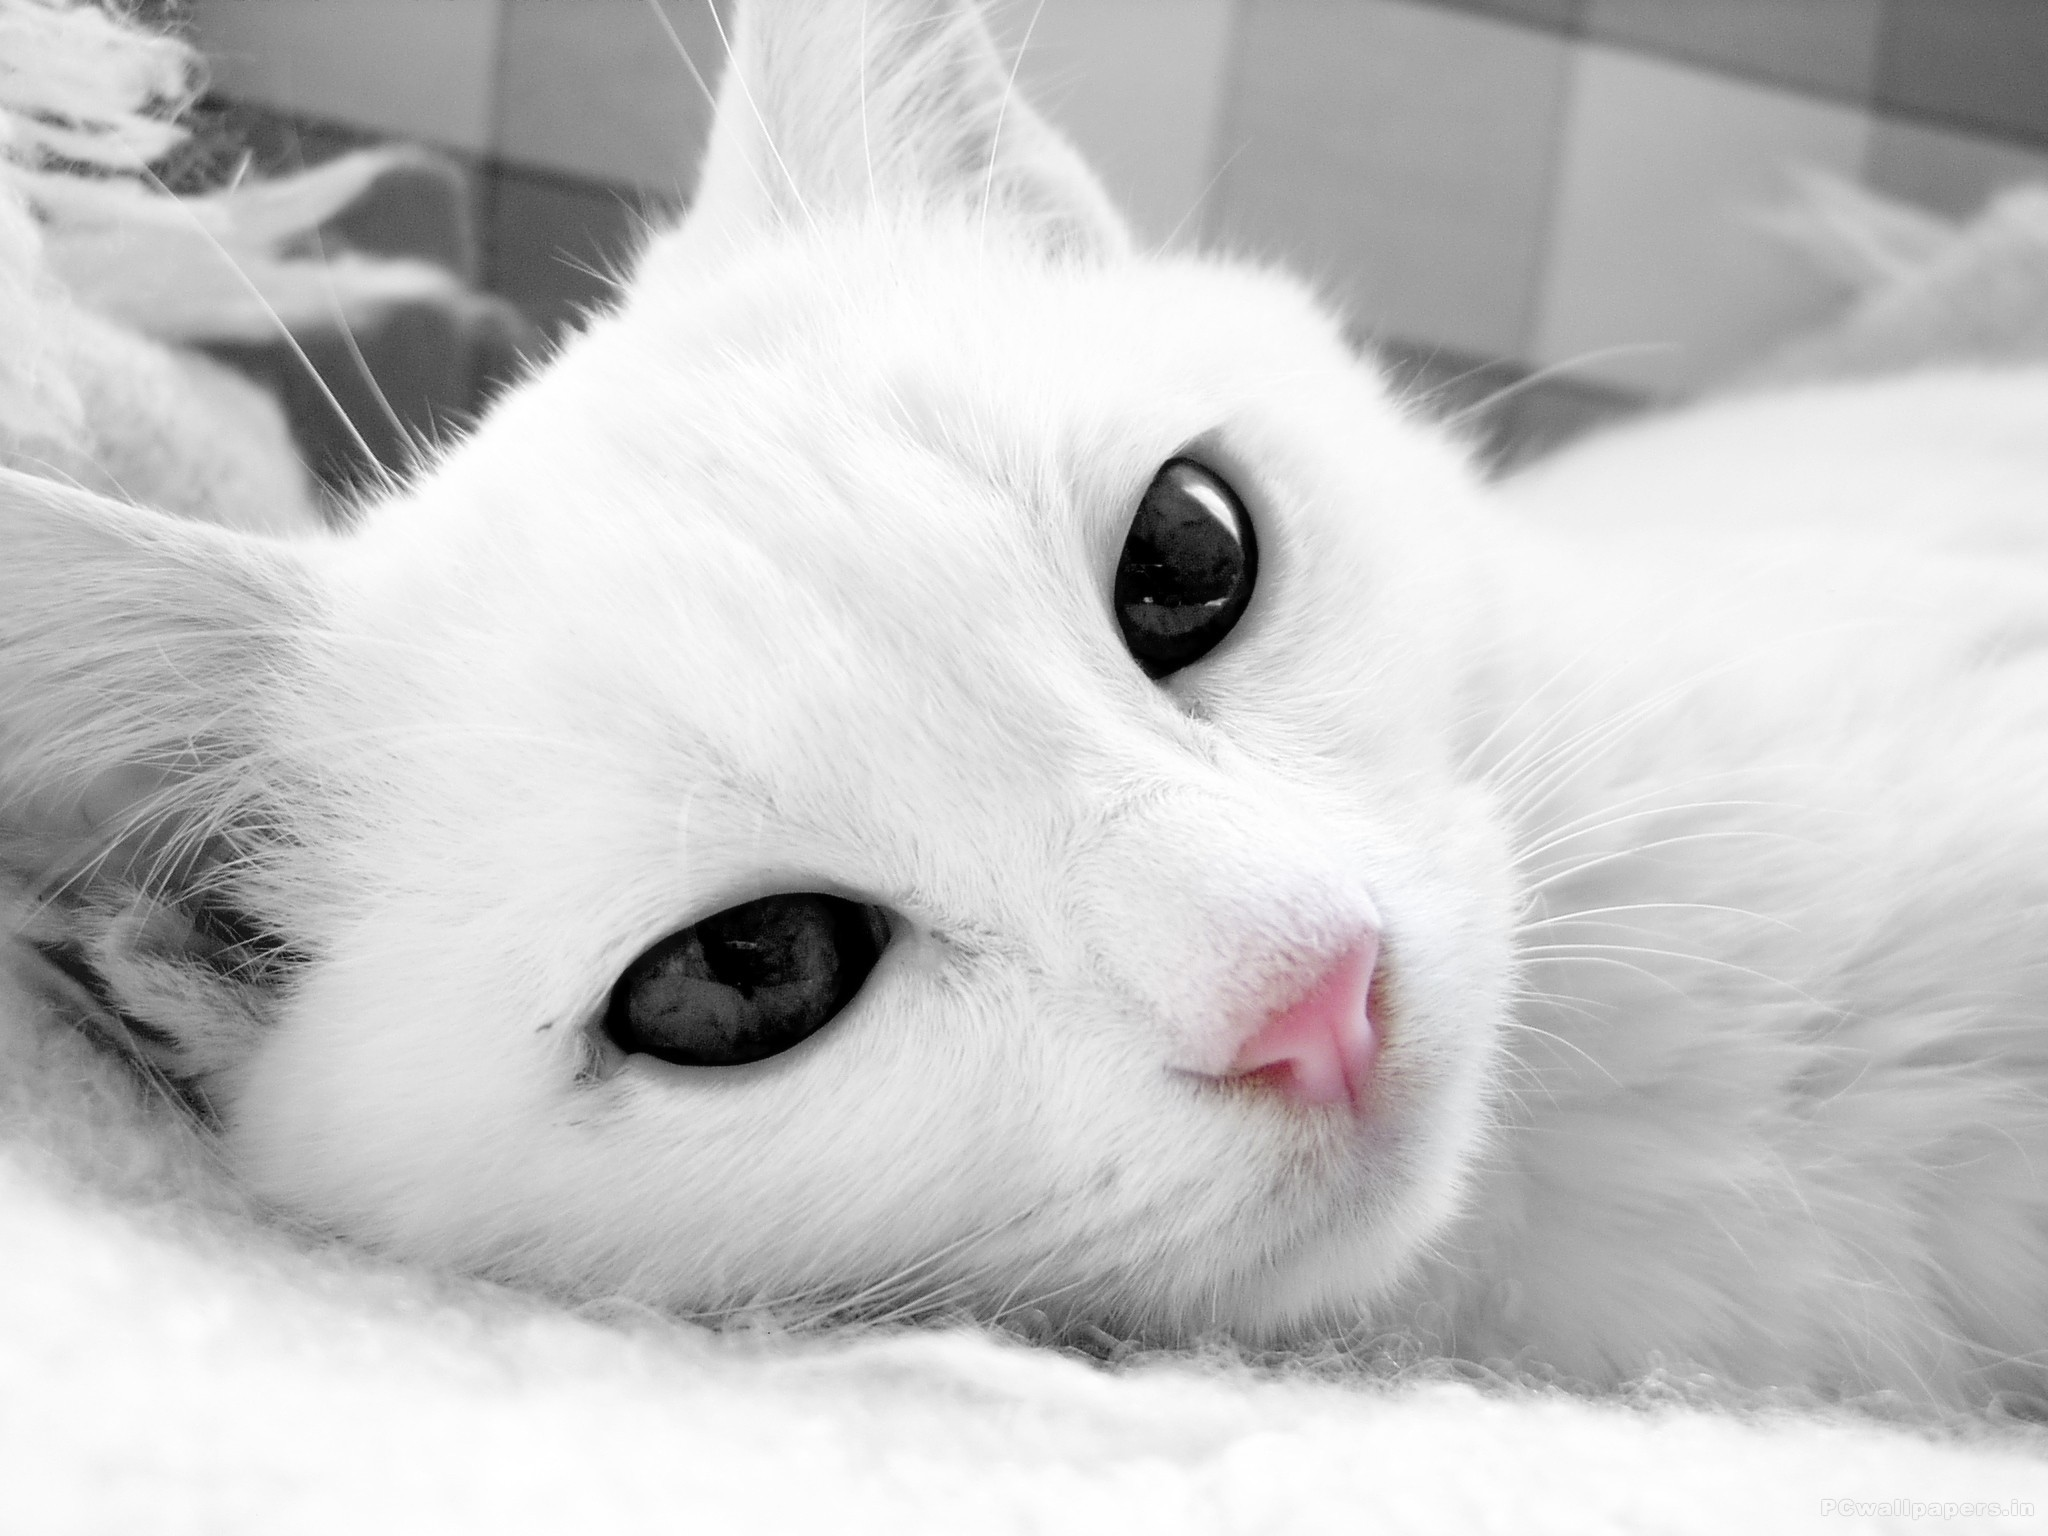 White Cat With Dark Eyes Close Up Wallpapers And Images 2048x1536